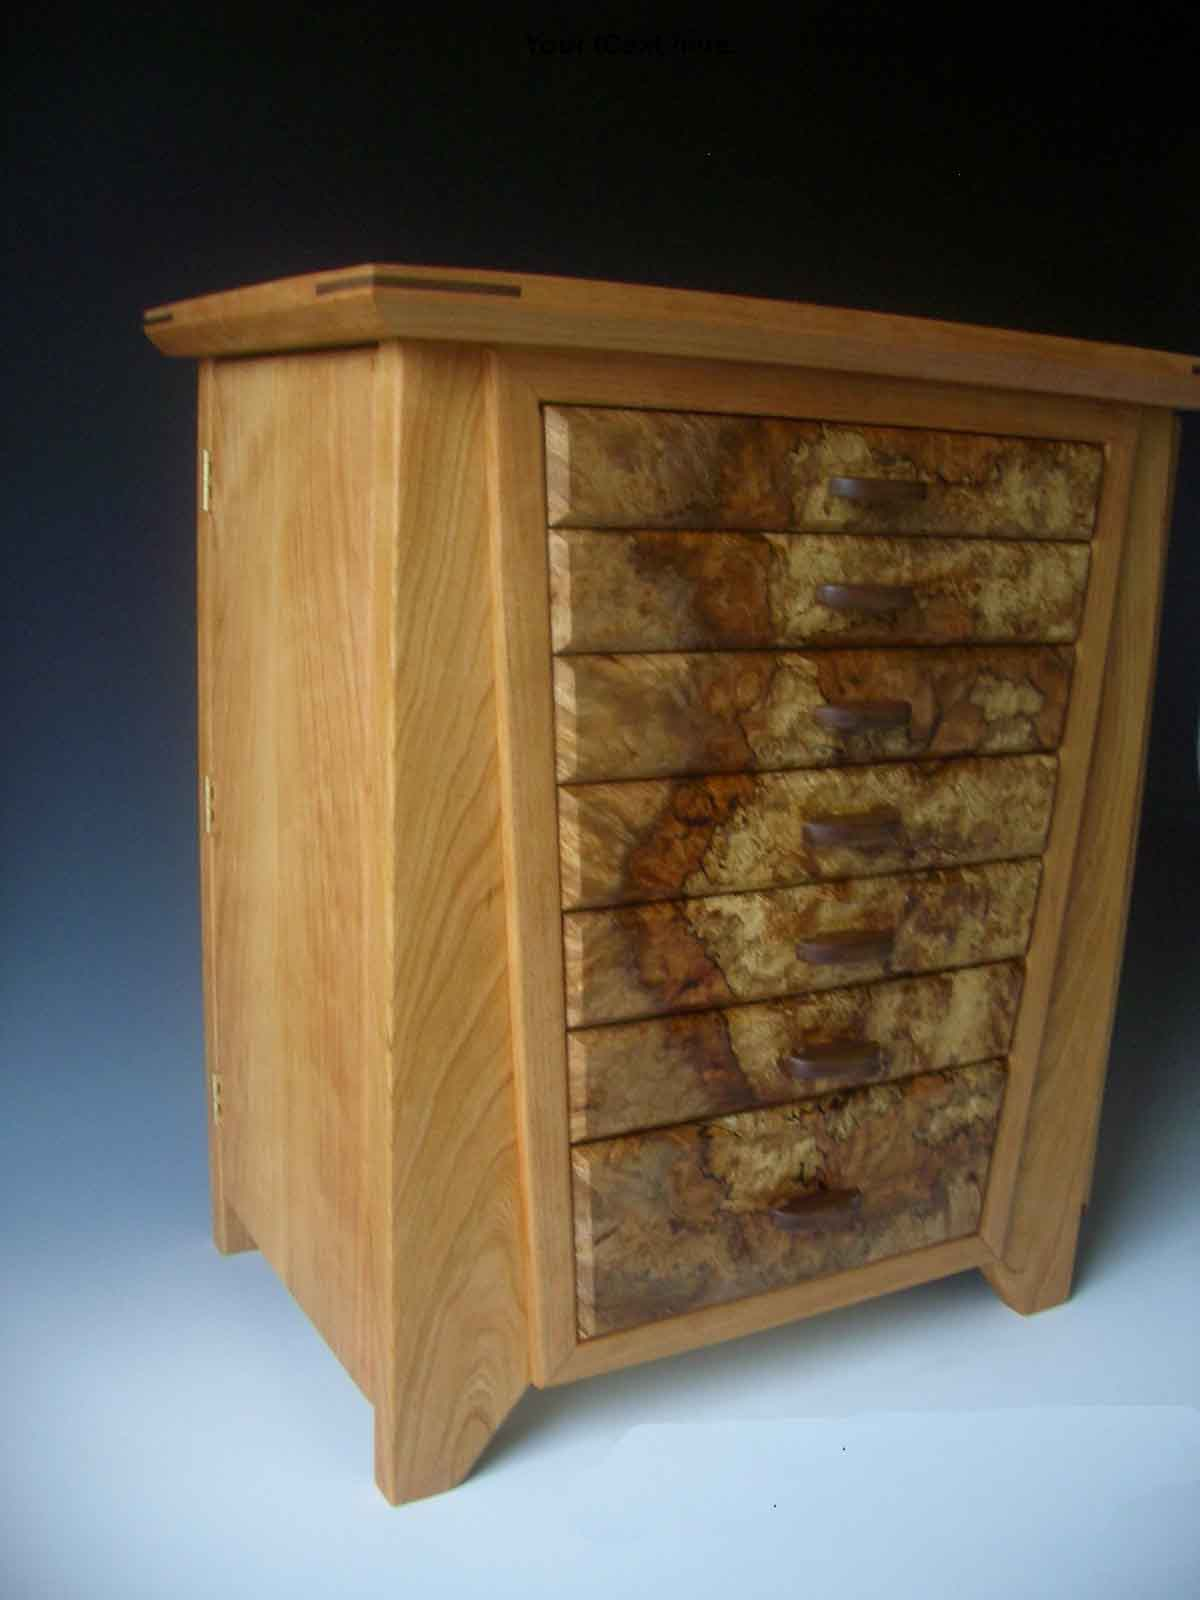 Handcrafted large jewelry box made of cherry wood with seven drawers for jewelry